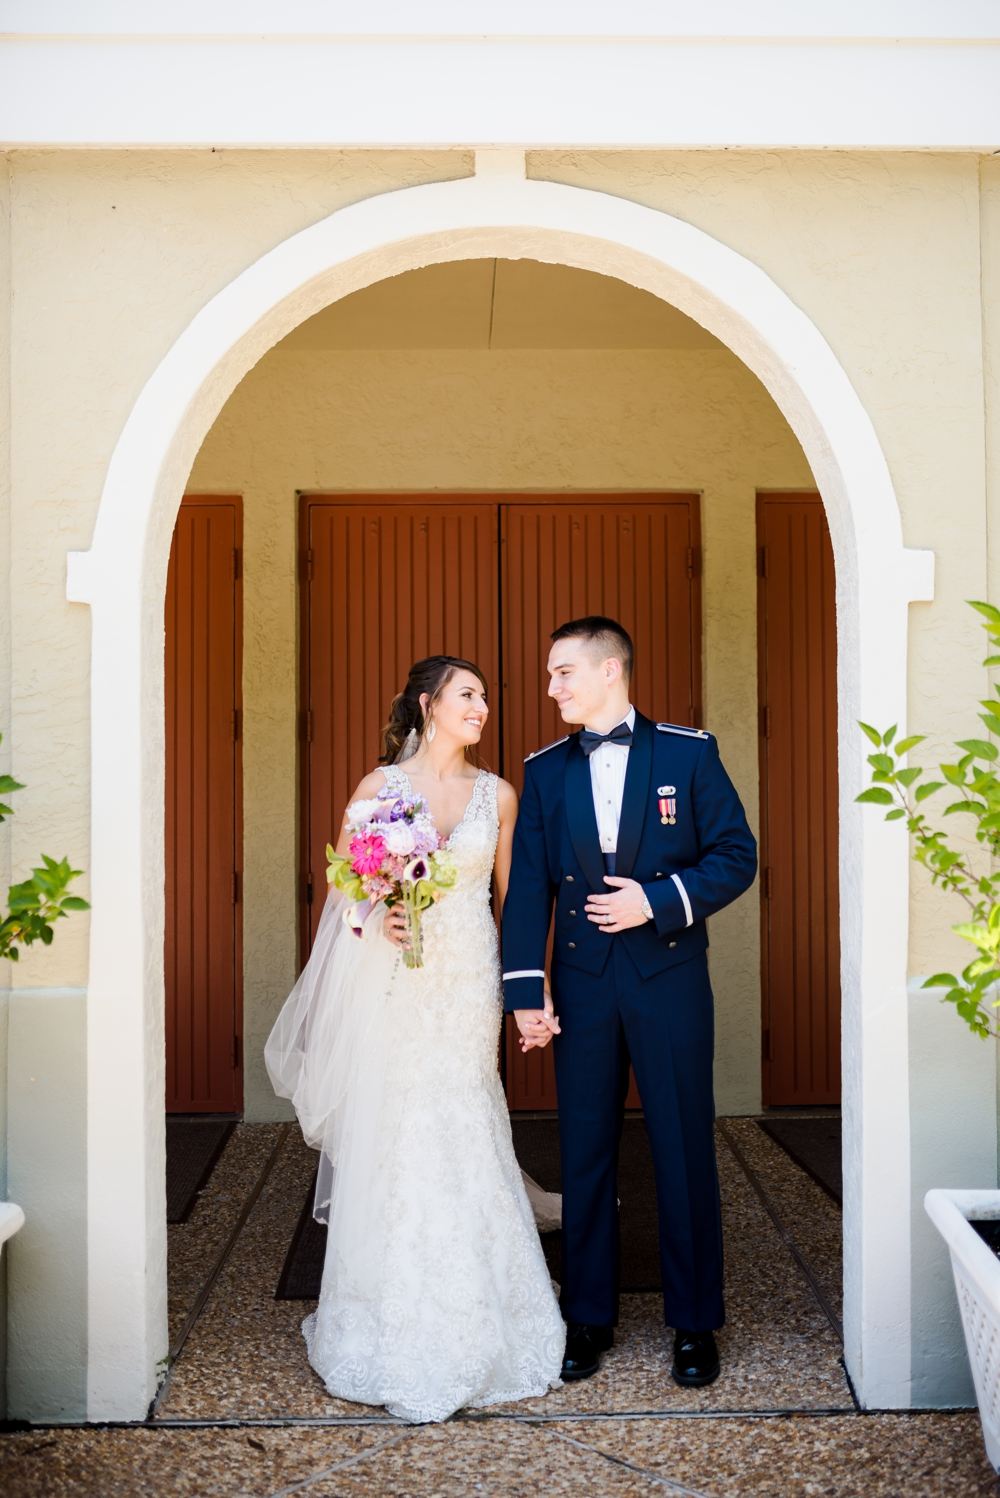 wallin-florida-wedding-photographer-kiersten-grant-56.jpg